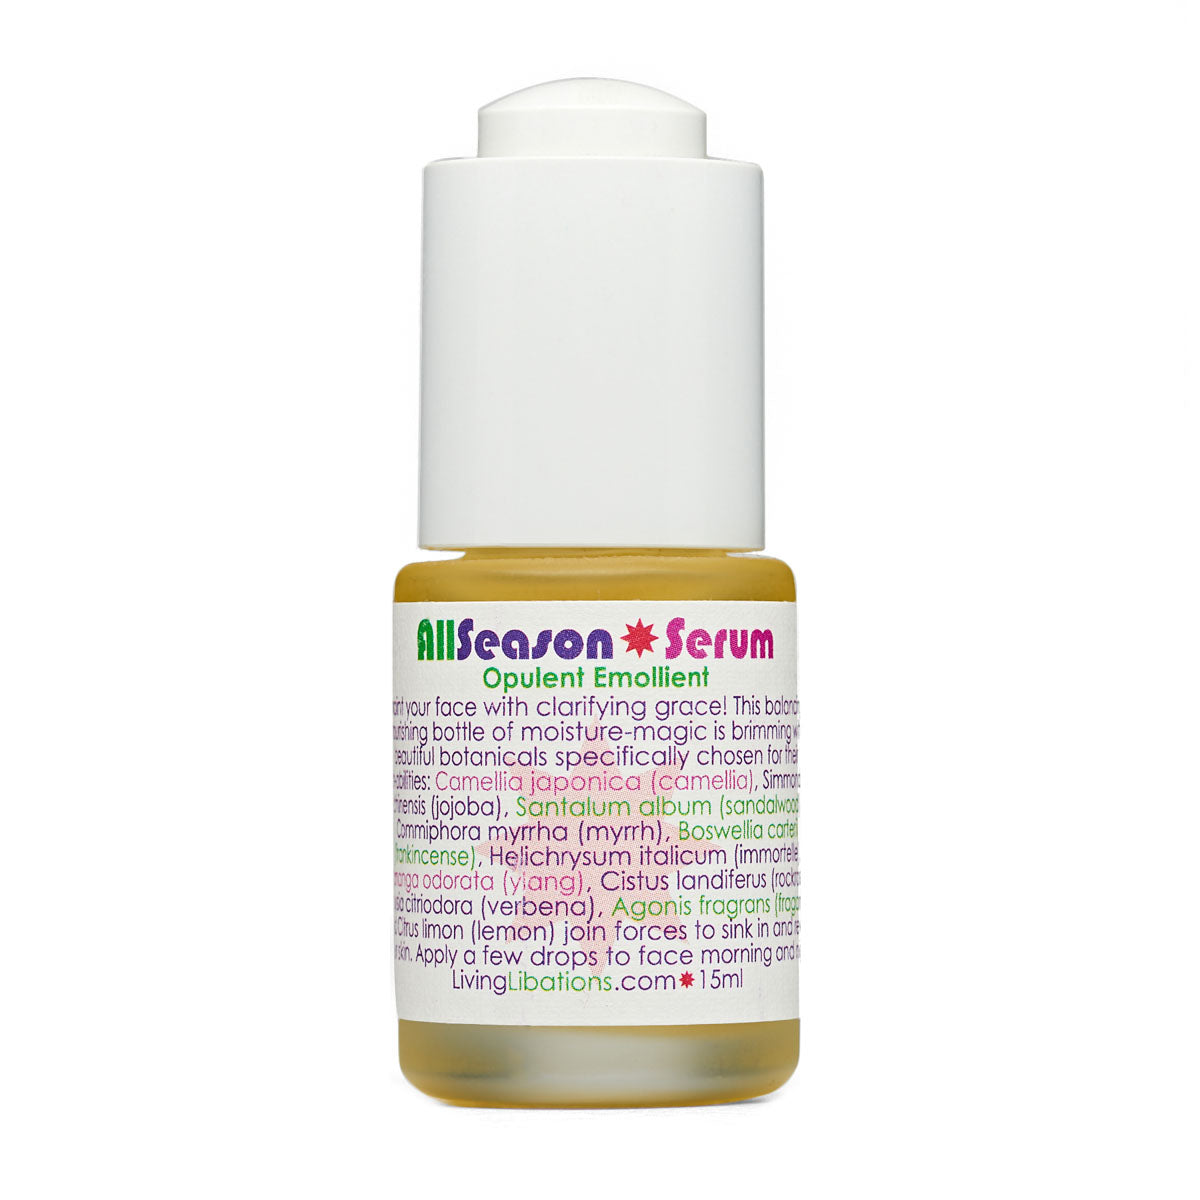 Living Libations - All Season Serum (15ml)